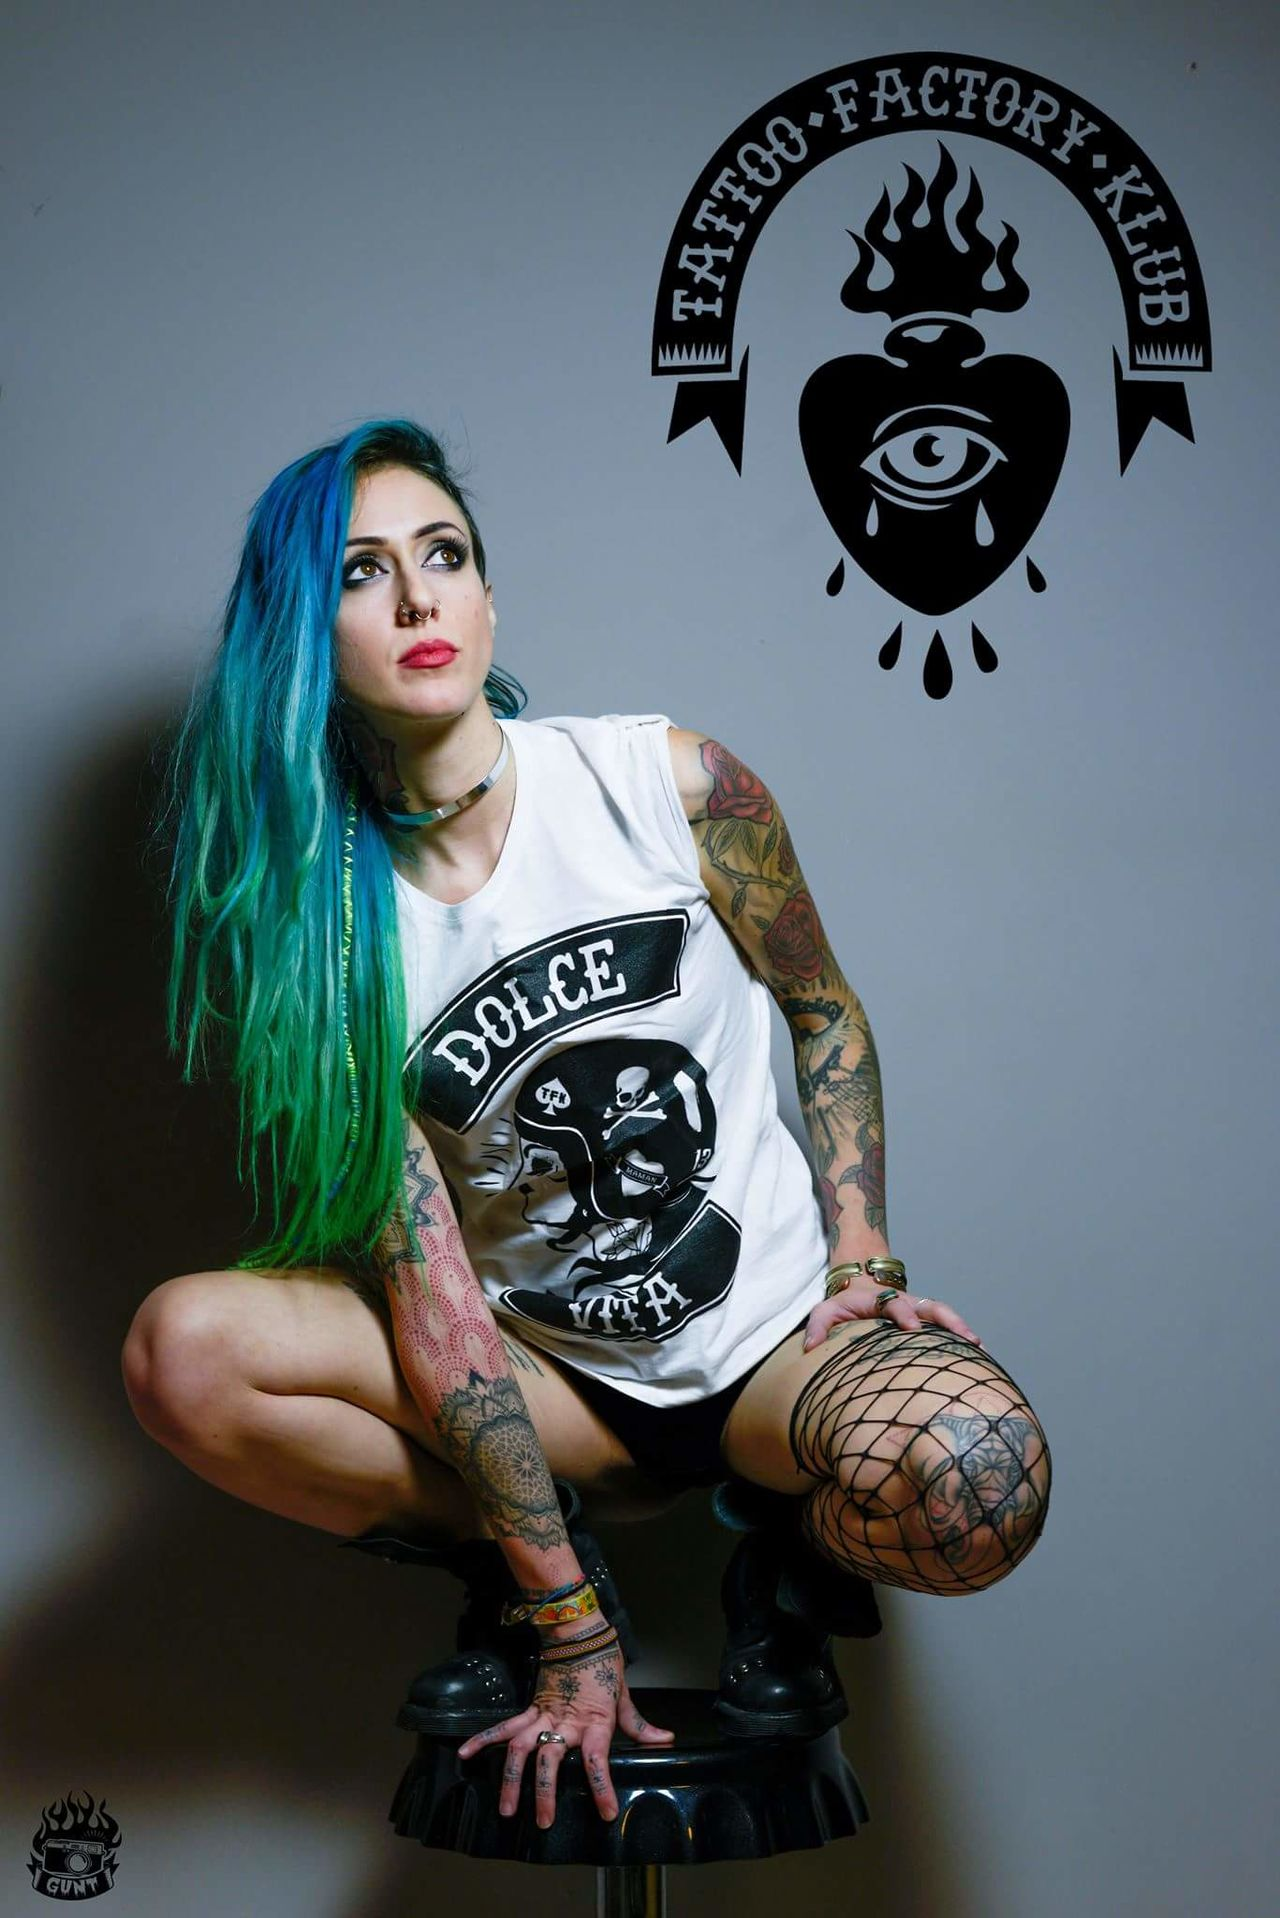 Designs Creativity Sexygirl Women Artist Publicity Image Manufactured Street Life Friends Tattoo Factory Klub Tattooed Clothing Beatiful Girl Portrait Guntphotoart Photooftheday Tshirtcollection Hairartist BlueHair Dreadlocks